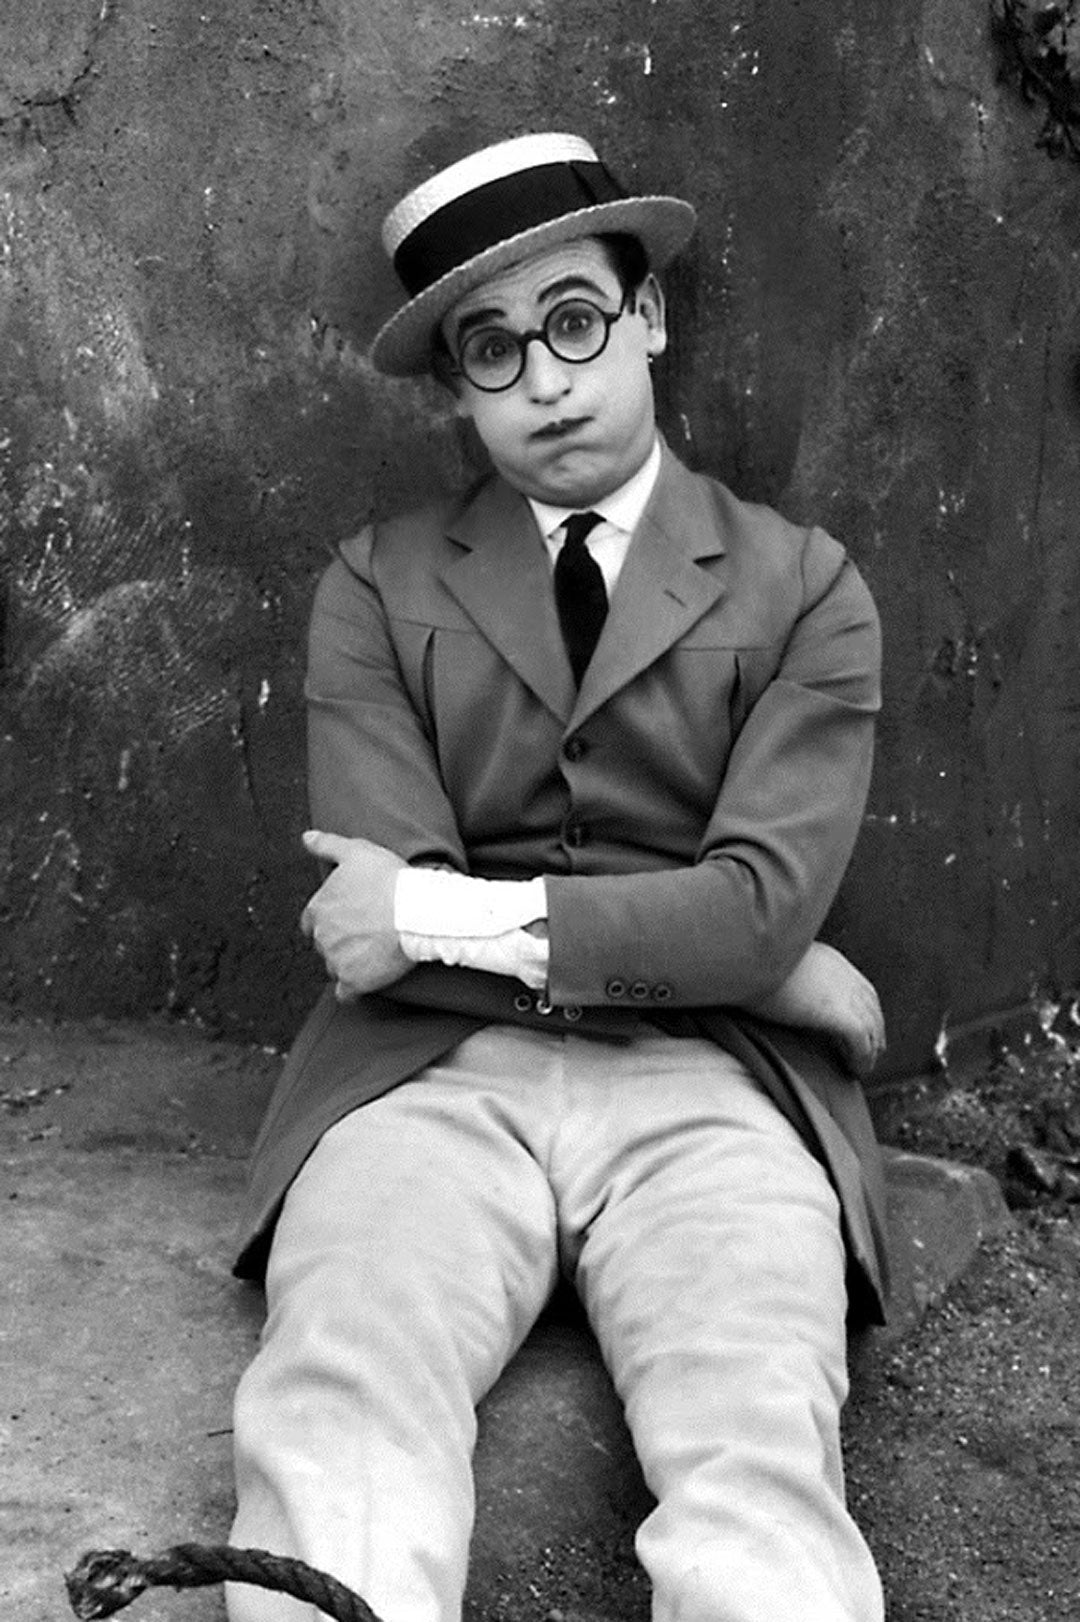 Harold Lloyd sitting on ground making funny face wearing hat suit and glasses